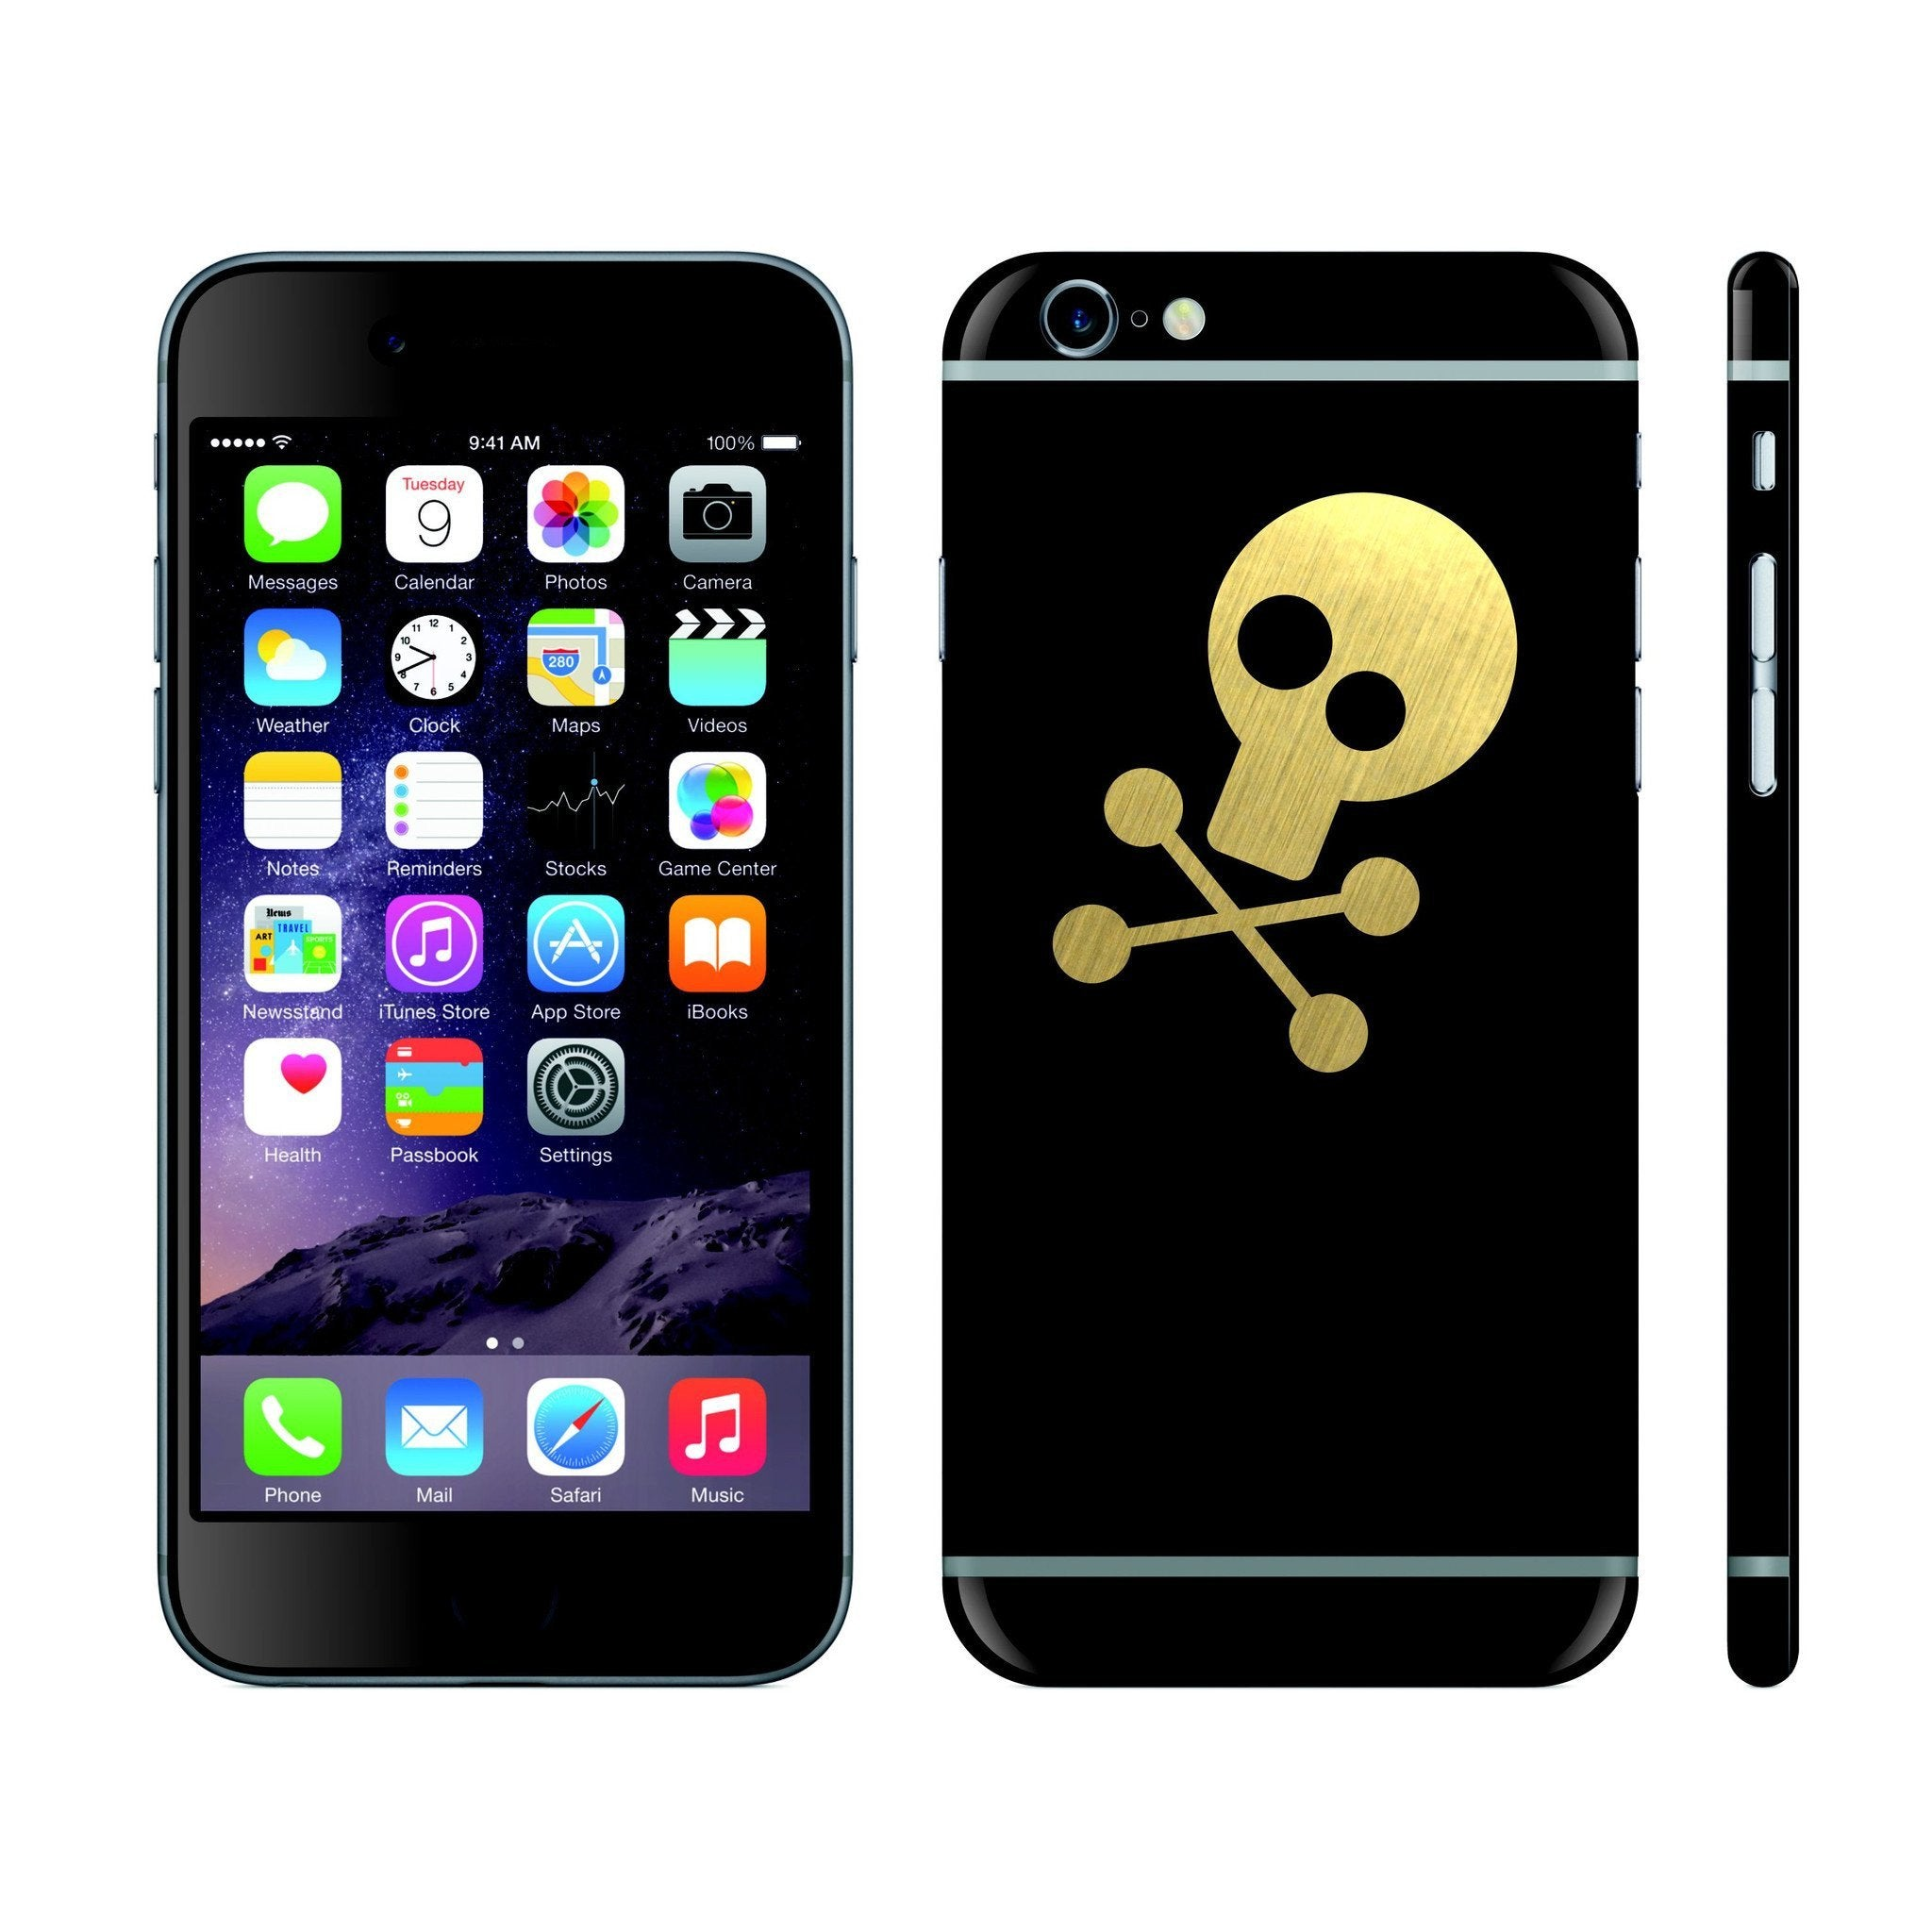 iPhone 6 Black Matt and Brushed Gold Skull Custom Designs Skin Cover Decal Wrap Sticker Protector by EasySkinz